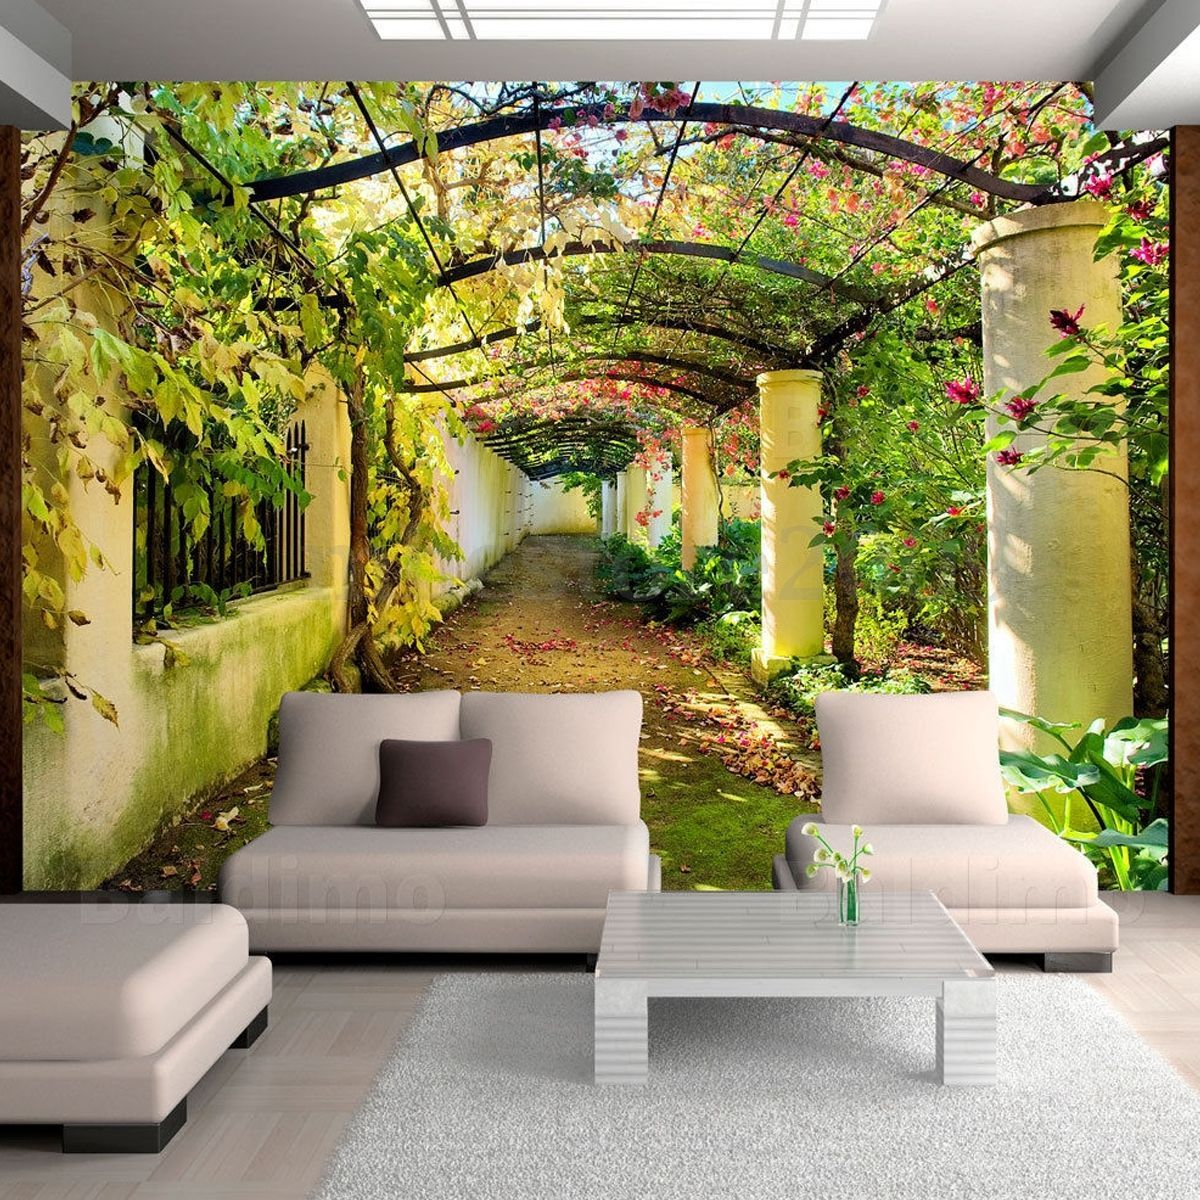 3d Vintage Alley Home Living Room Photo Wall Mural Art Backgr